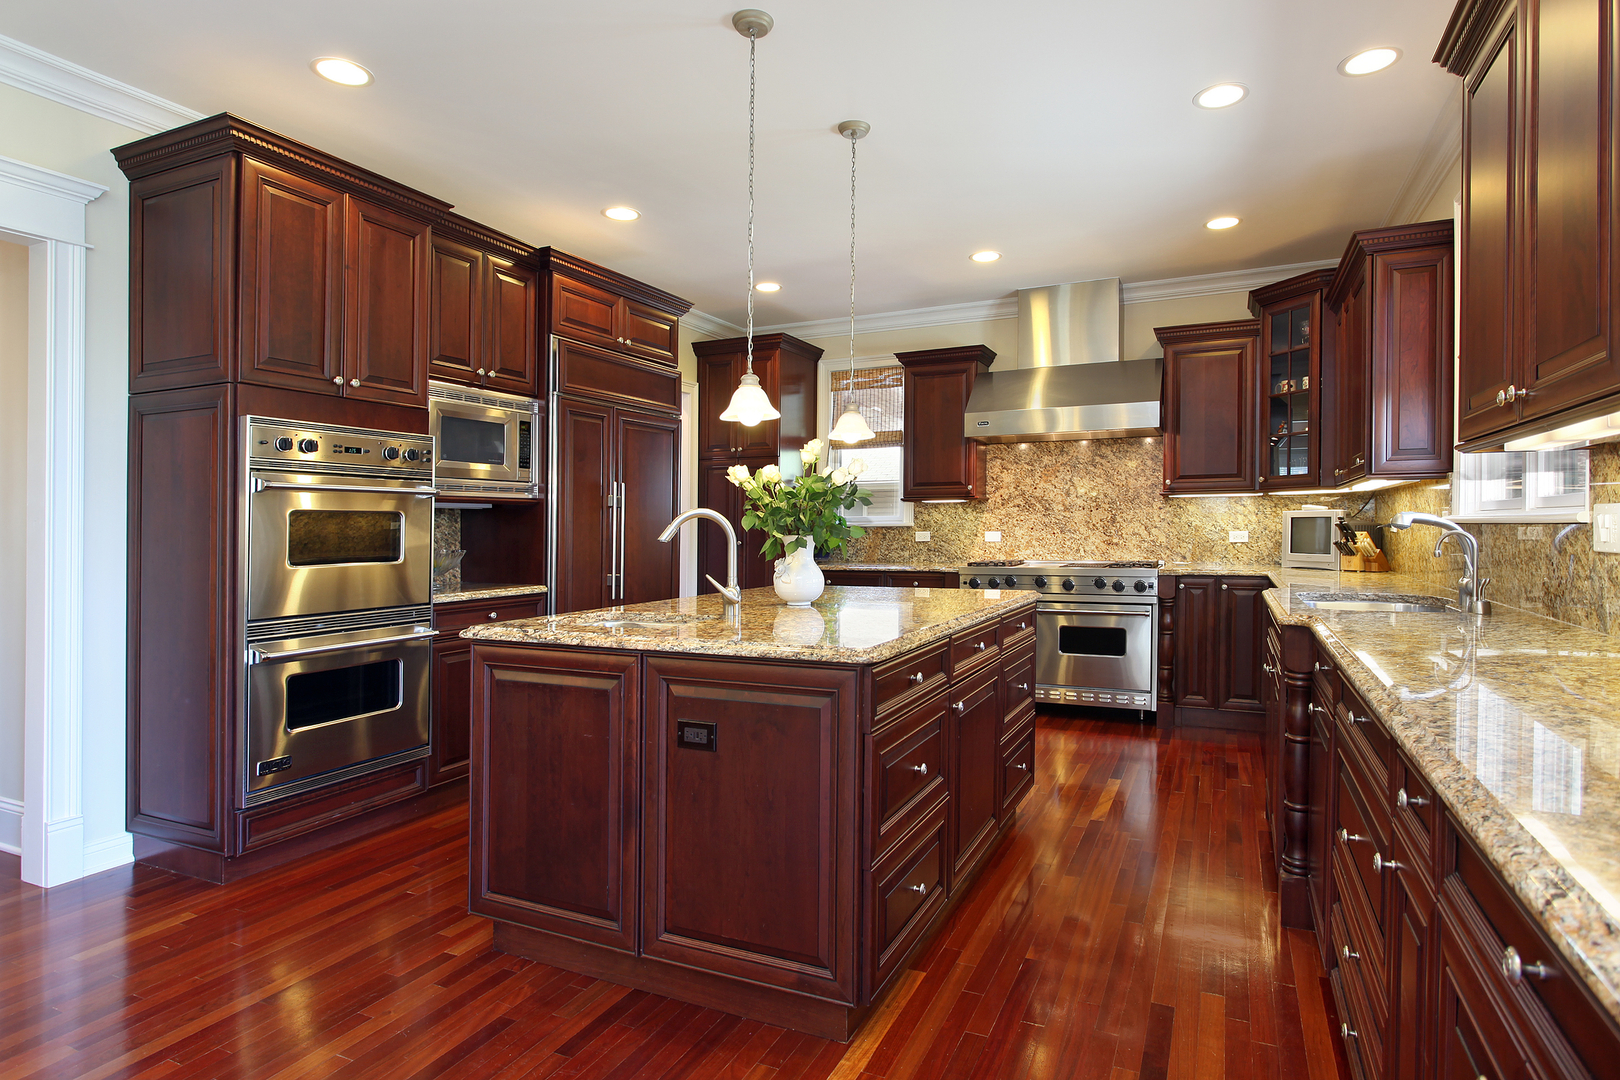 Chicago Il Kitchen Remodeling Kitchen And Bathroom Remodeling Real Estate Investing Living